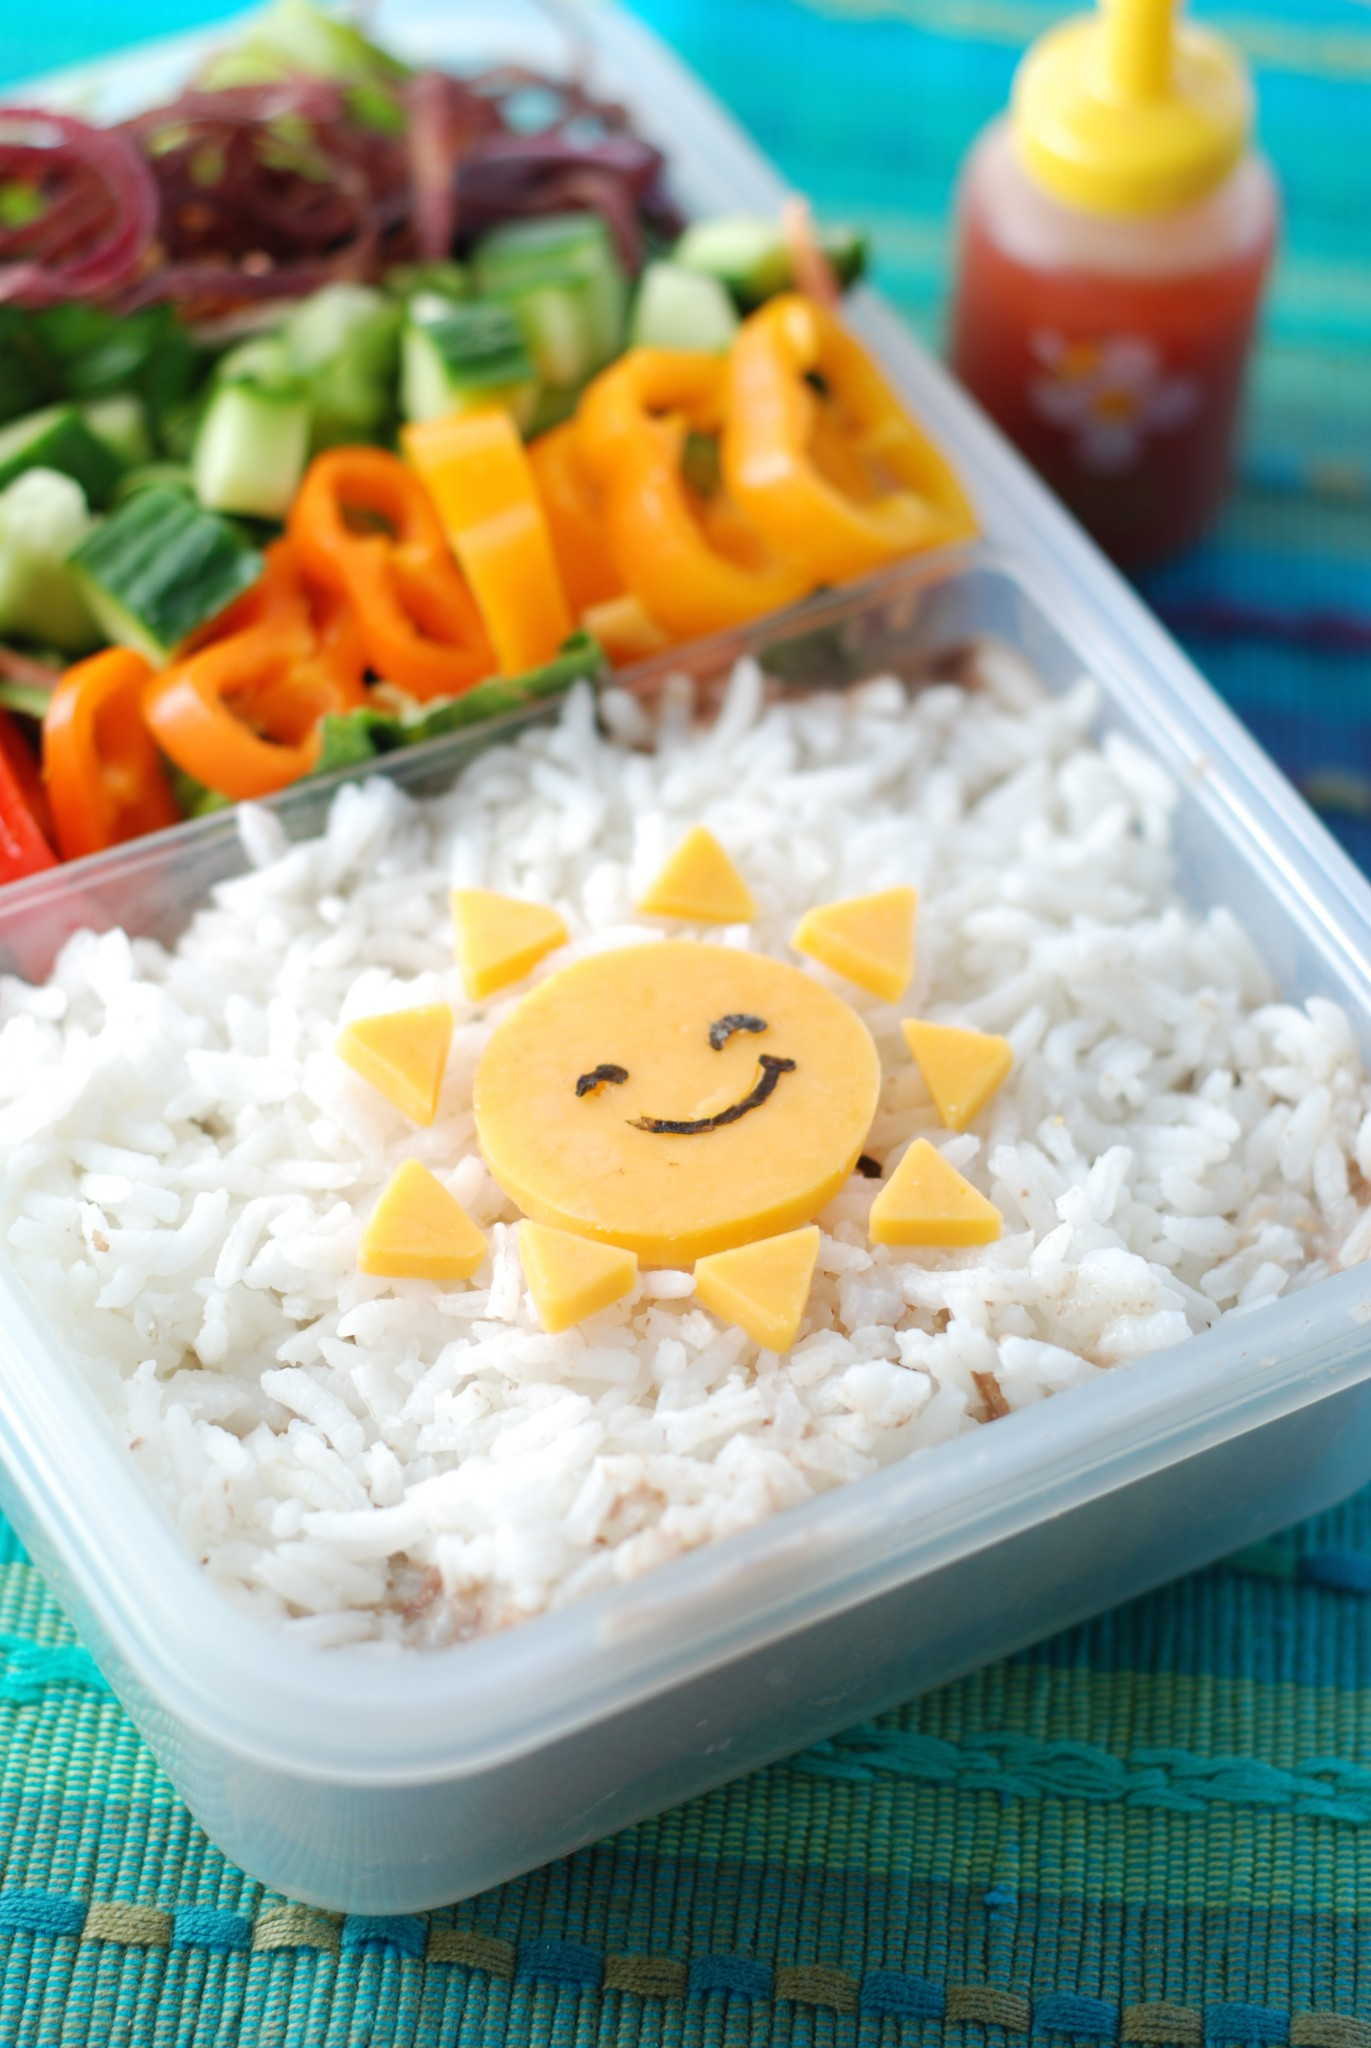 Great lunch idea for leftovers - pack them in a bento box, put the leftover meat from dinner under rice, add cute details on the top, fill in with veggies and fruit. BAM - healthy, fun lunch!